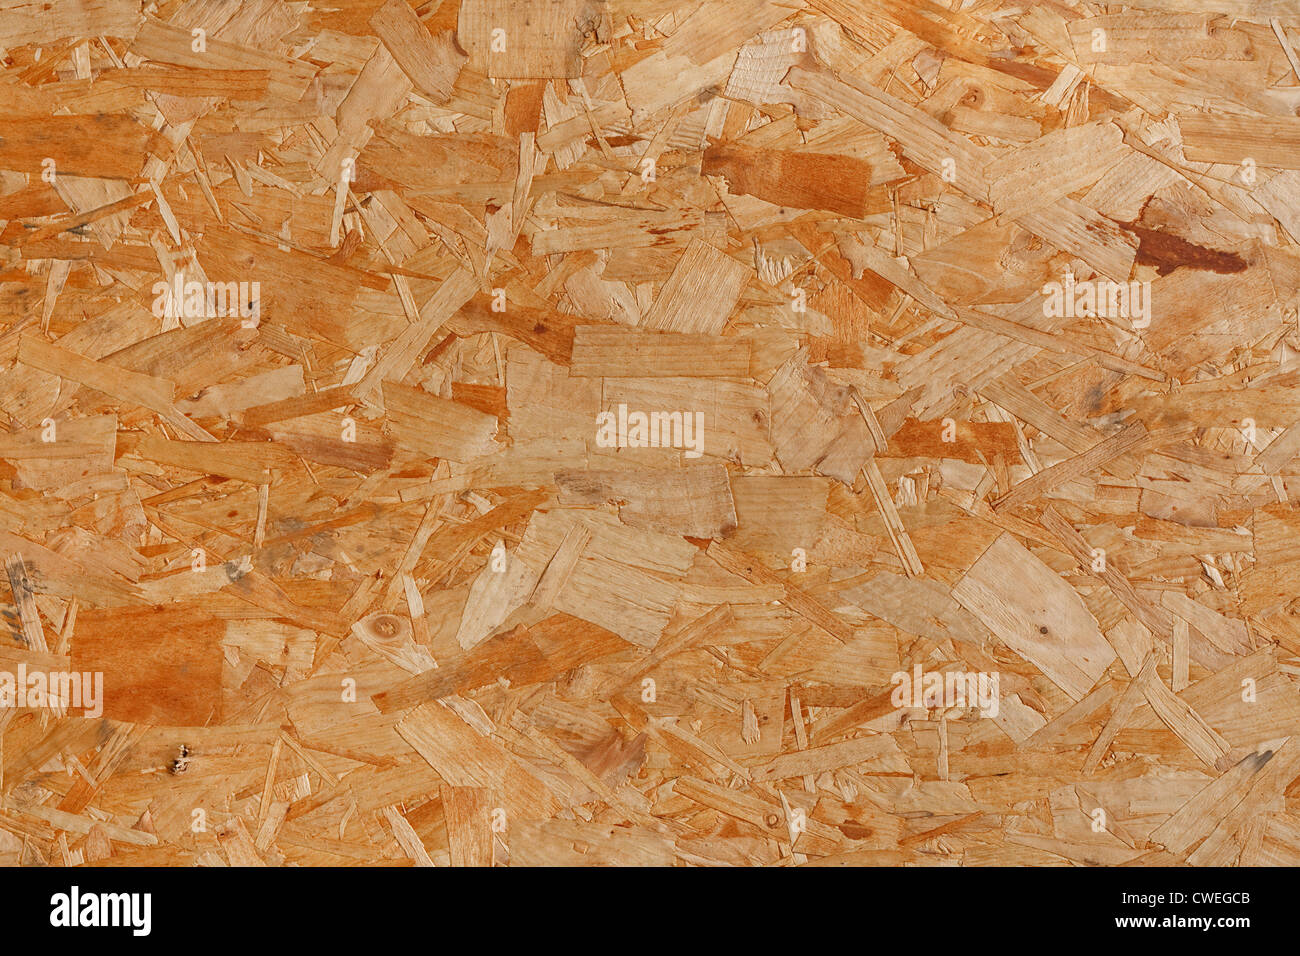 Plywood Background Of Oriented Strand Board Or Osb Great For Stock Photo Royalty Free Image